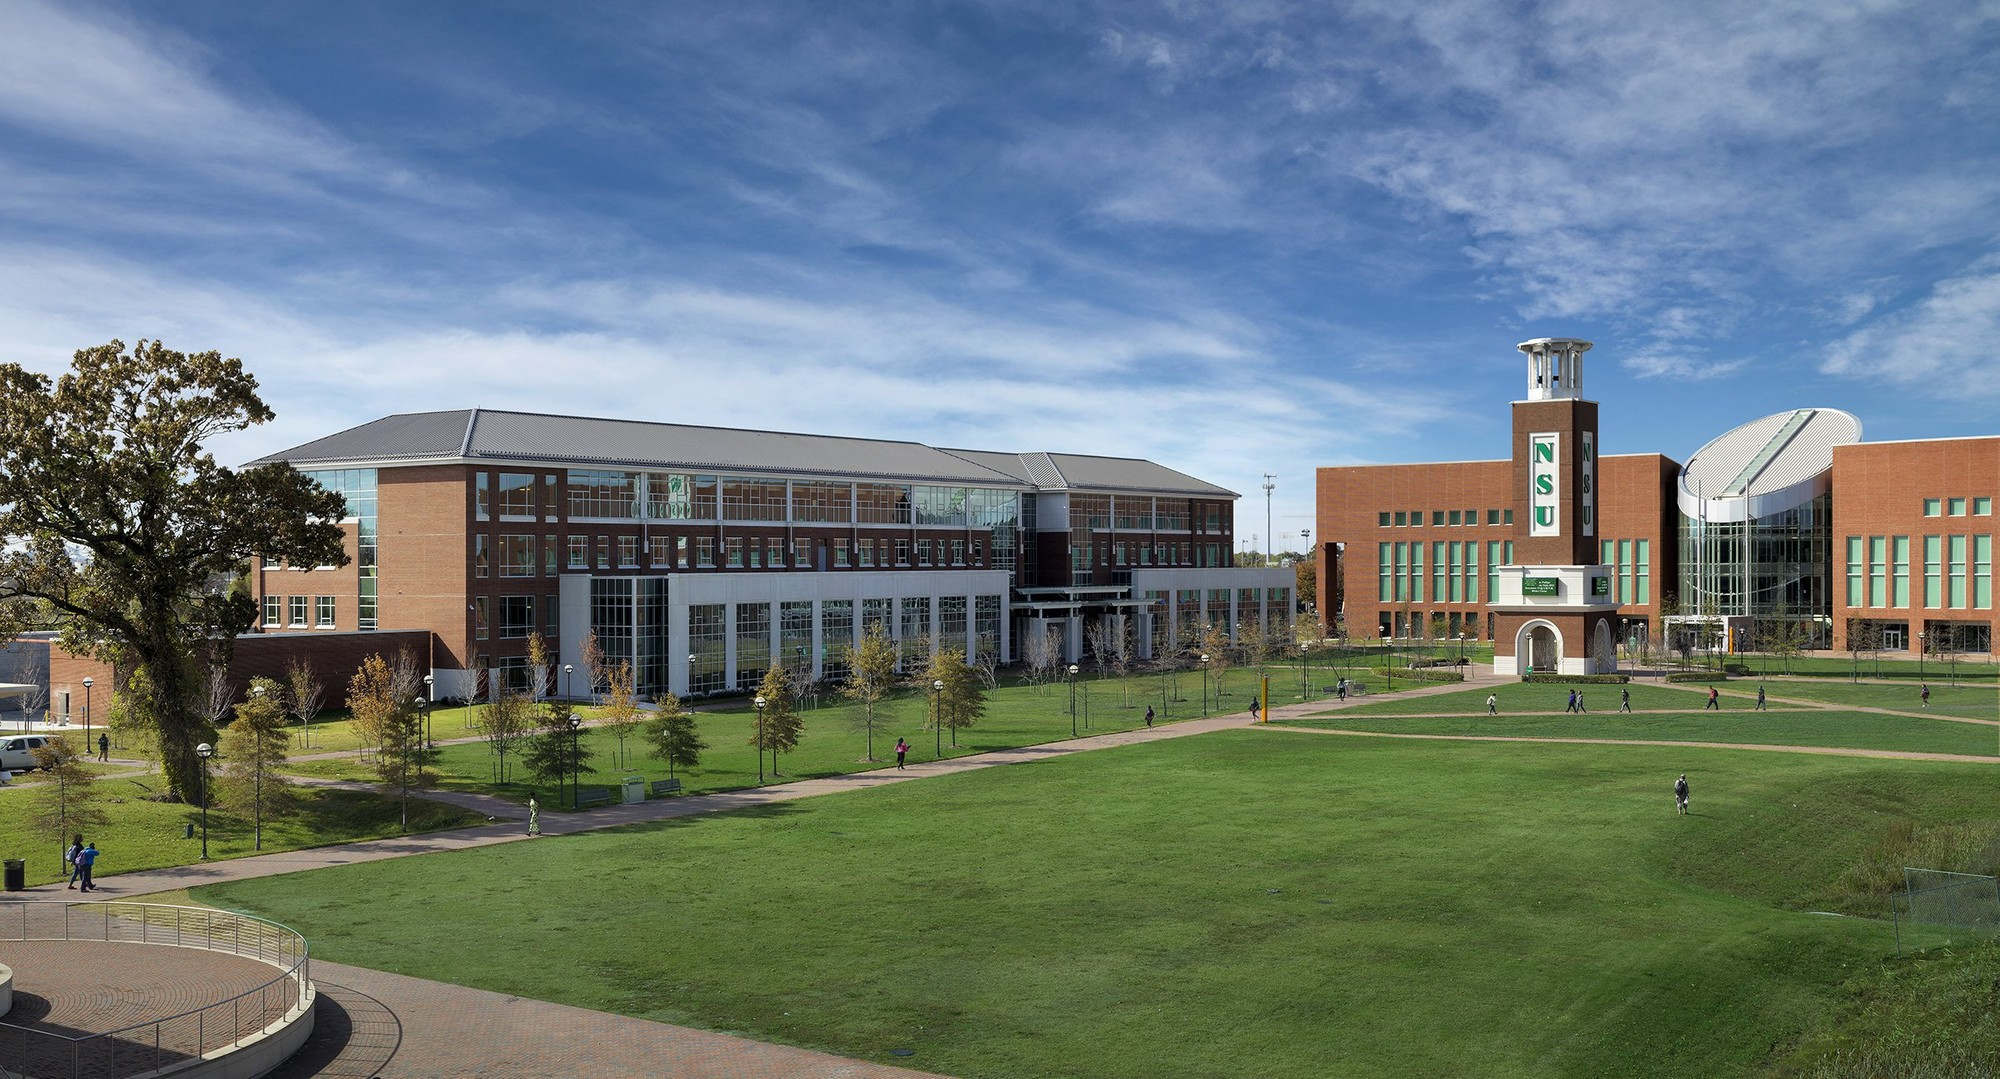 View of the Norfolk State University campus on a sunny day